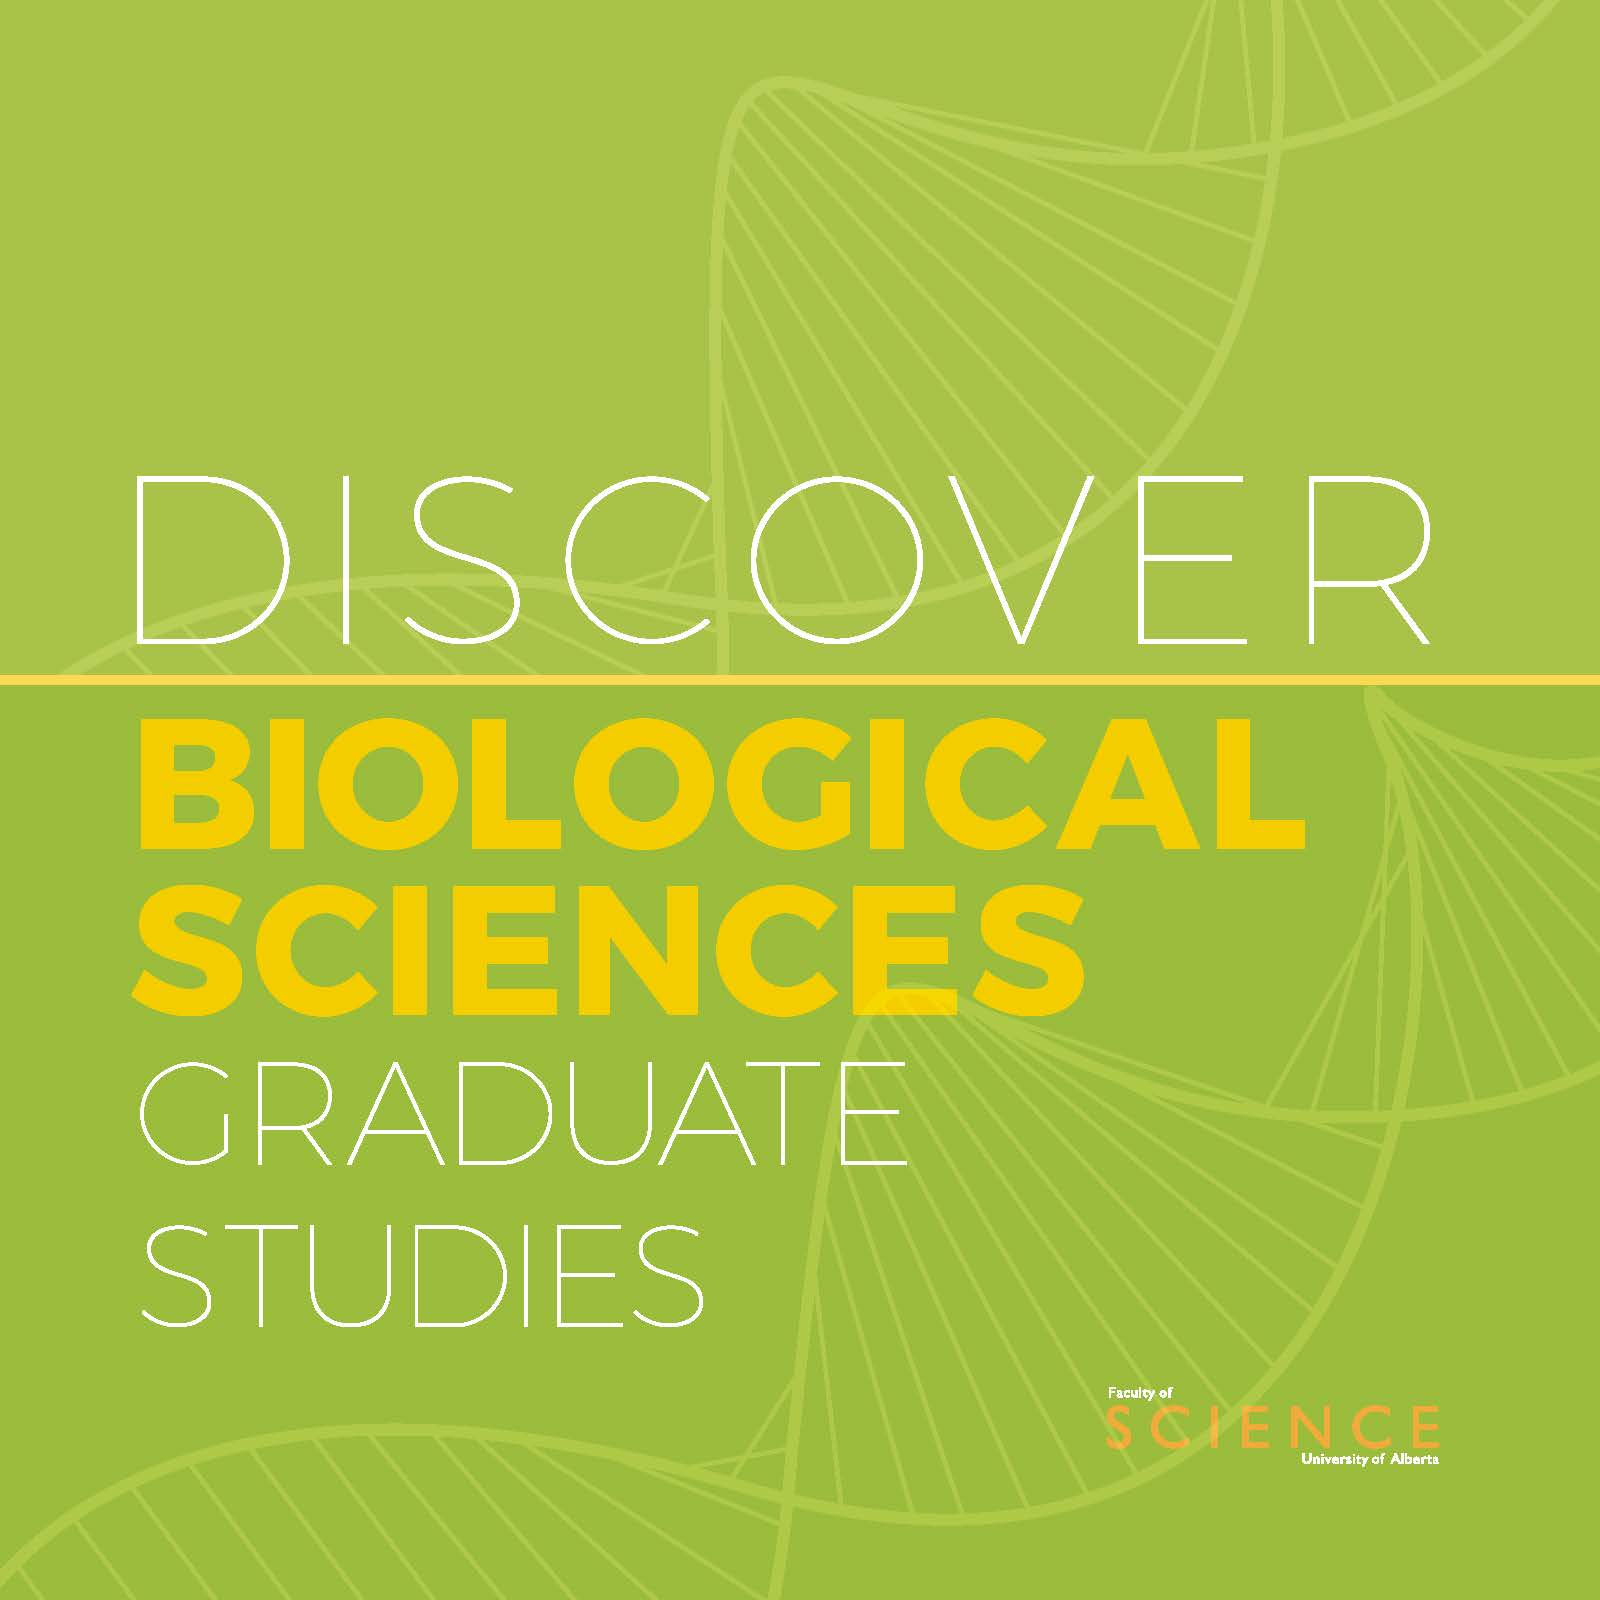 Biological Sciences Graduate Studies